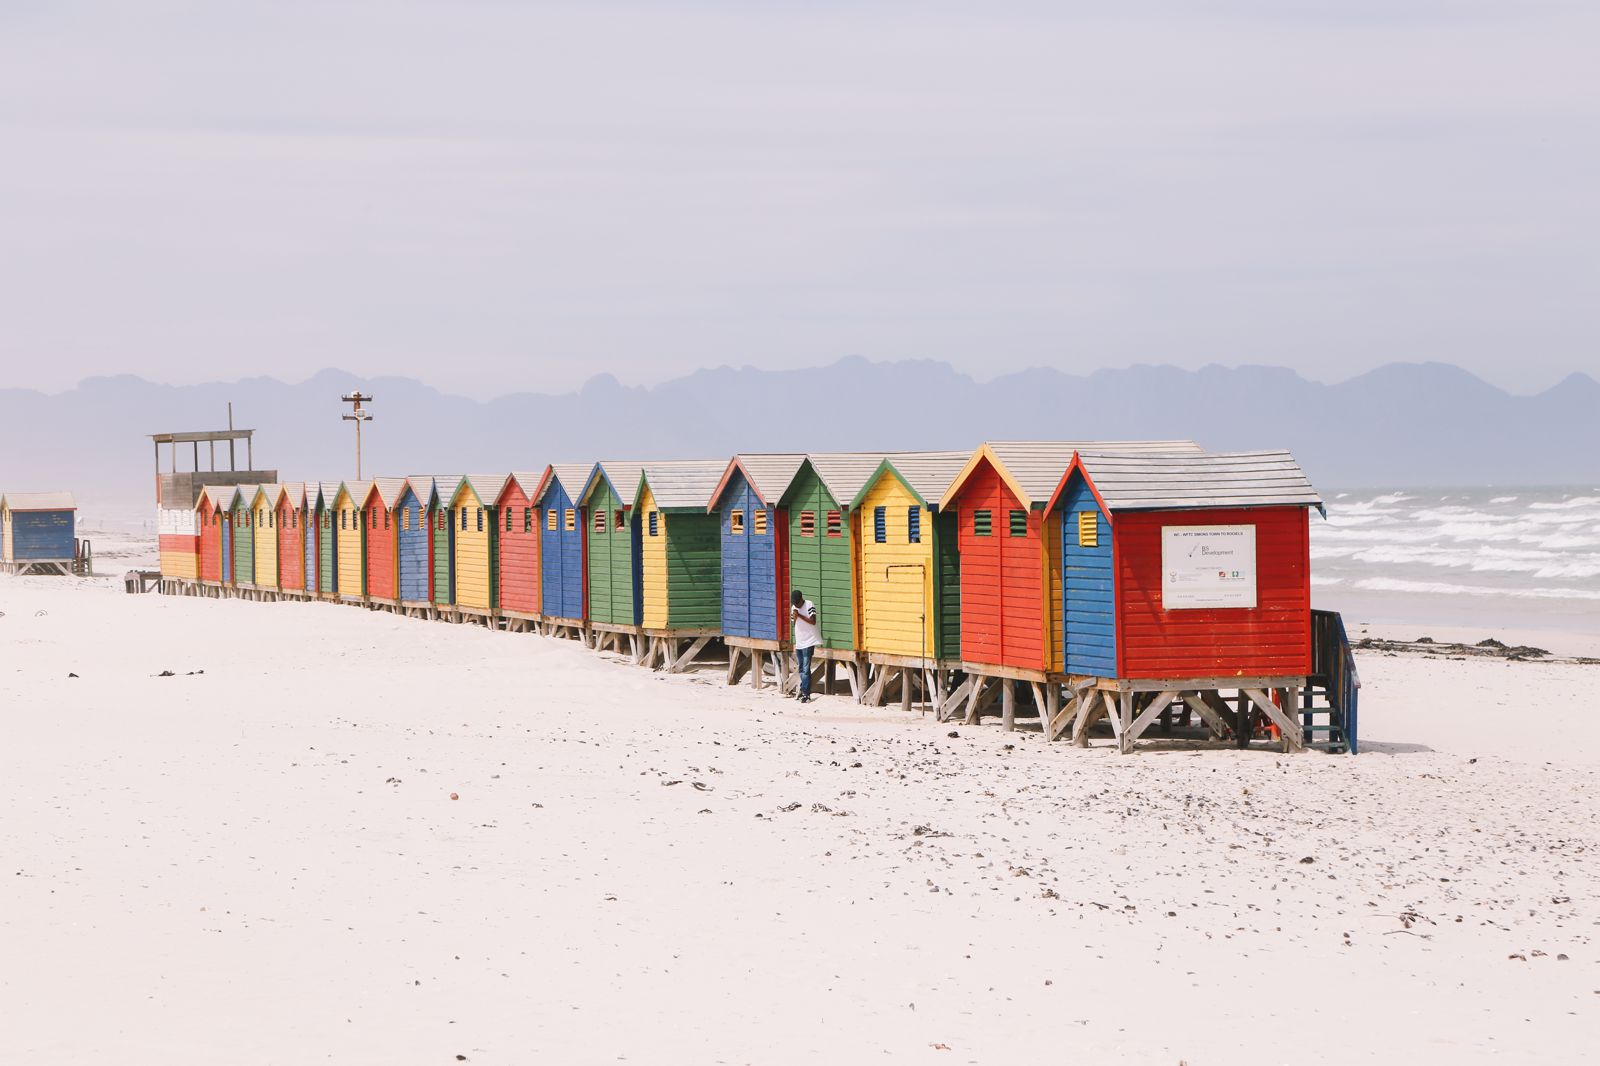 Photo Diary Muizenberg Beach In Cape Town South Africa - 9 things to see and do in muizenberg beach